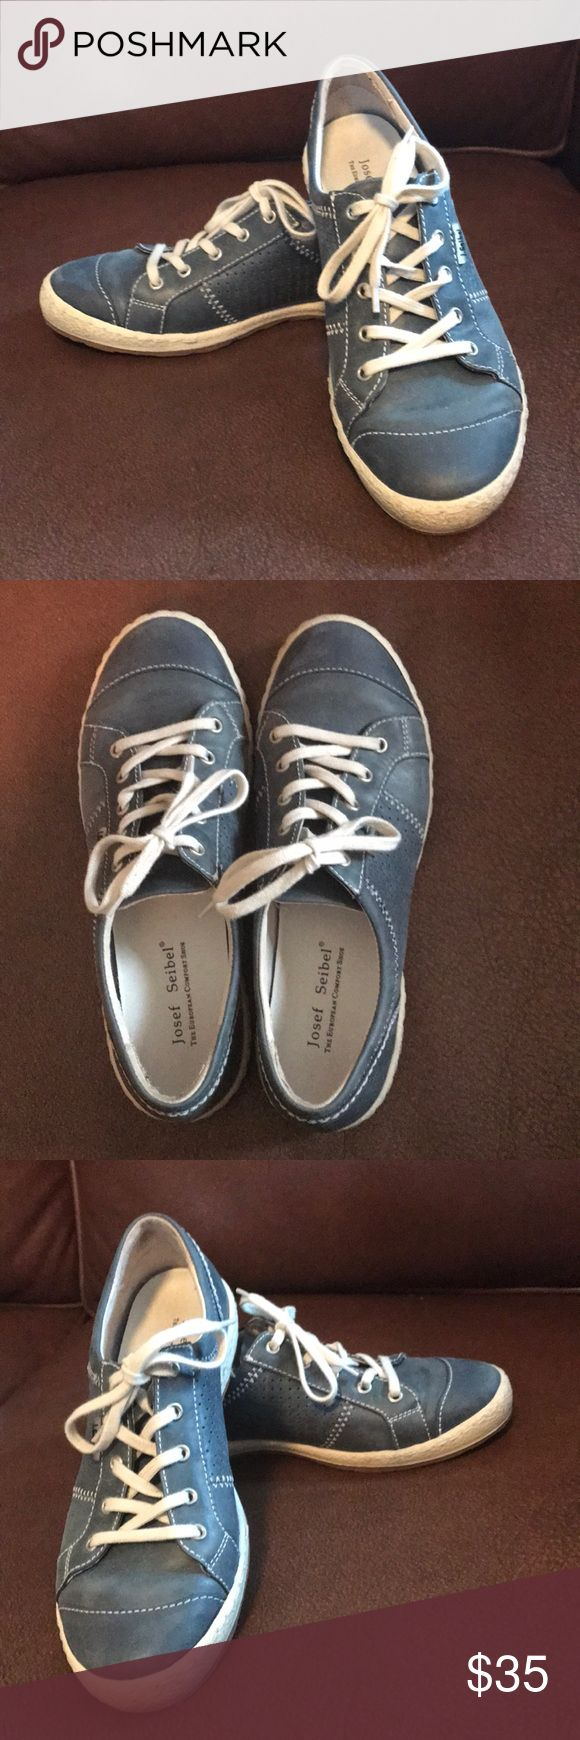 Josef Seibel walking shoes 38 Used, but plenty of life in them! Size 38, muted denim blue color. Josef Seibel Shoes Sneakers